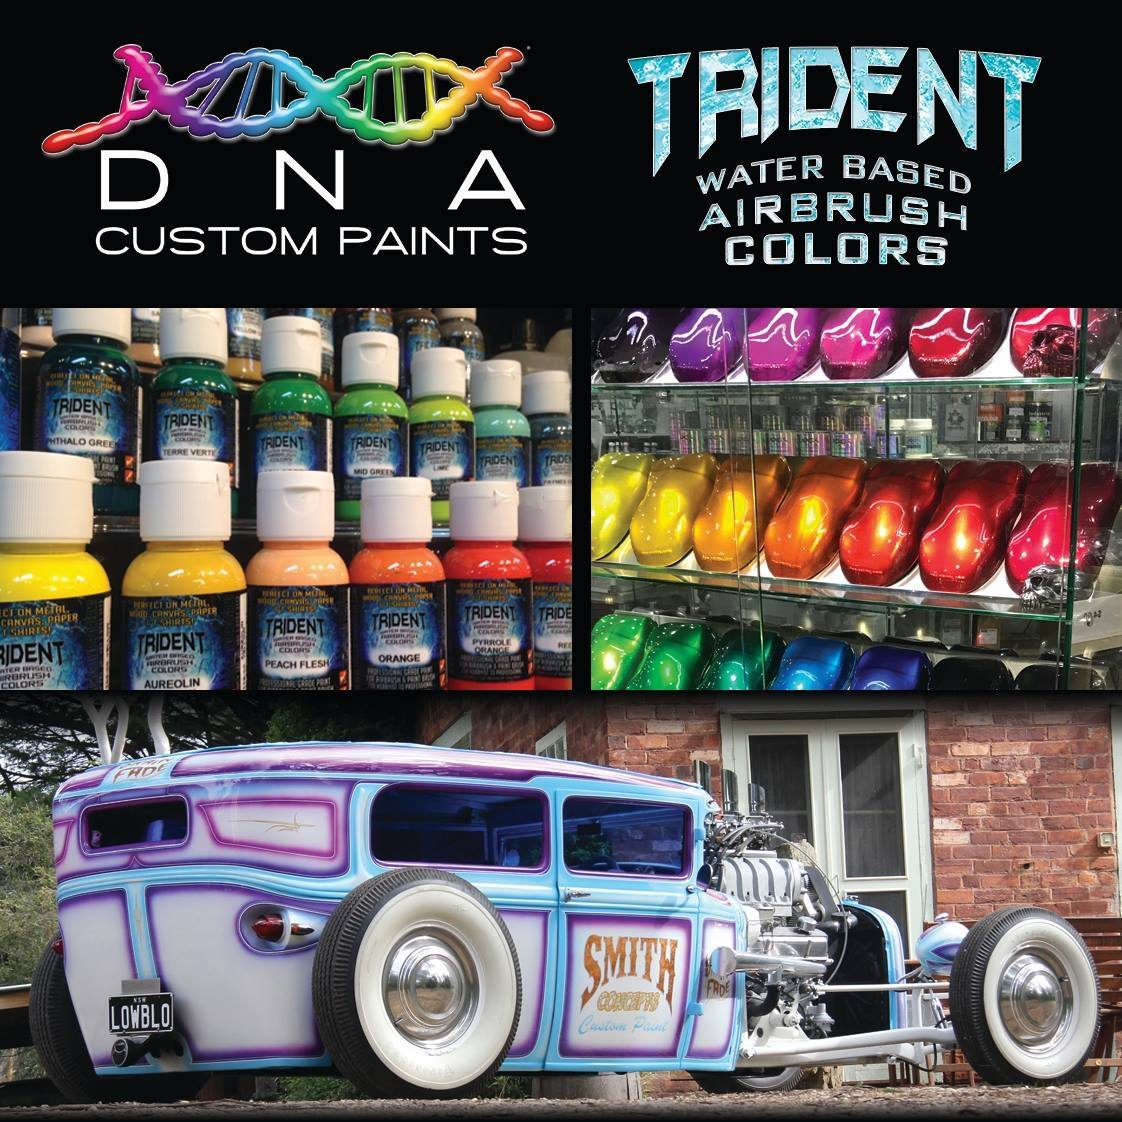 Dna Custom Paints Dna Custom Paints Candy Paints Airbrush Paints Special Effects